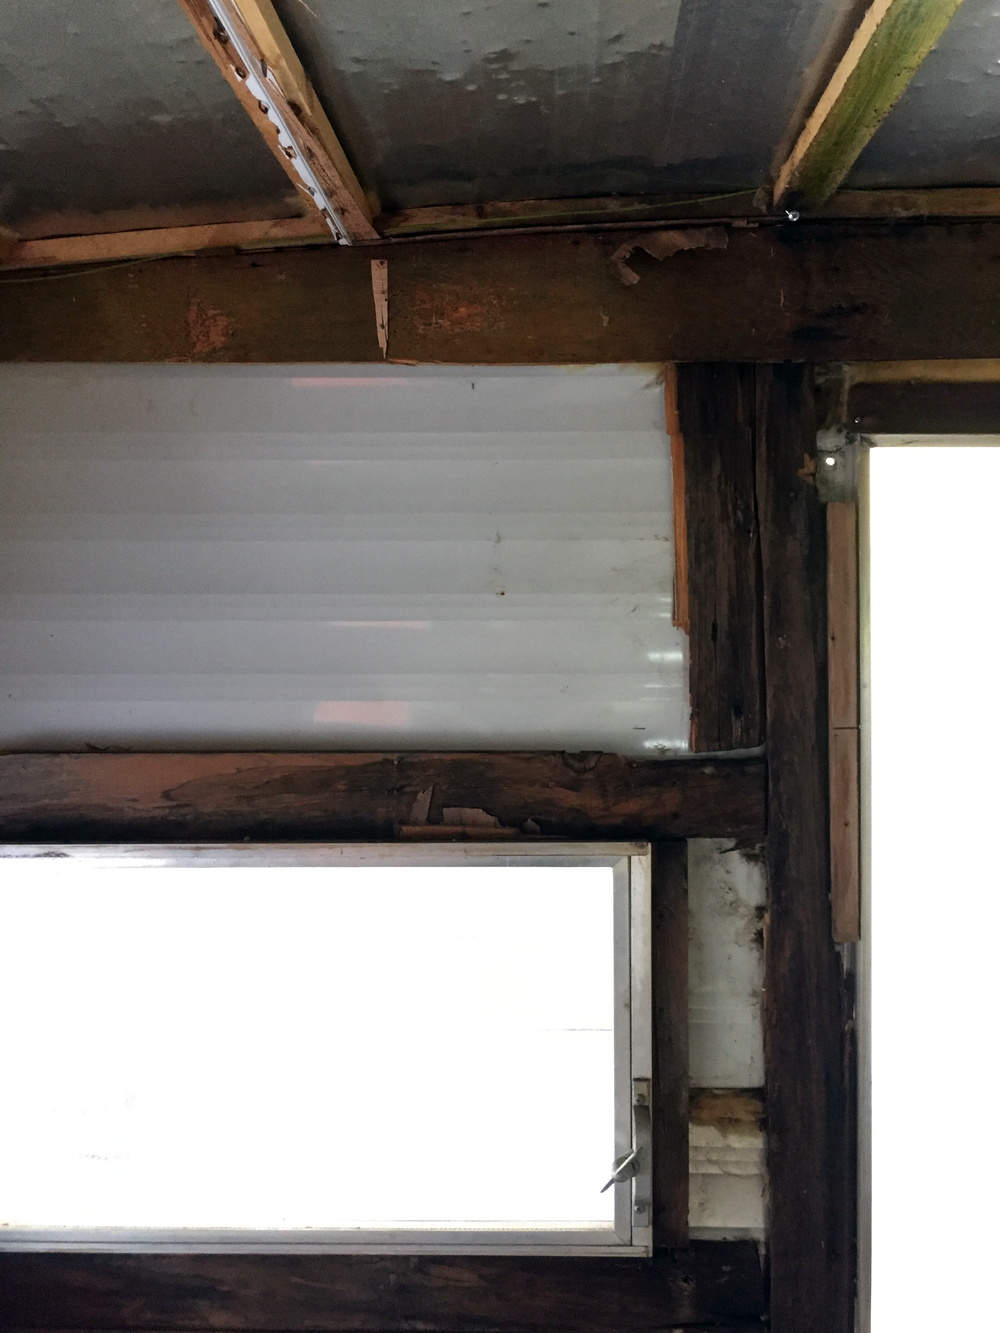 Post-demo — detail of the dinette area window by the exterior door